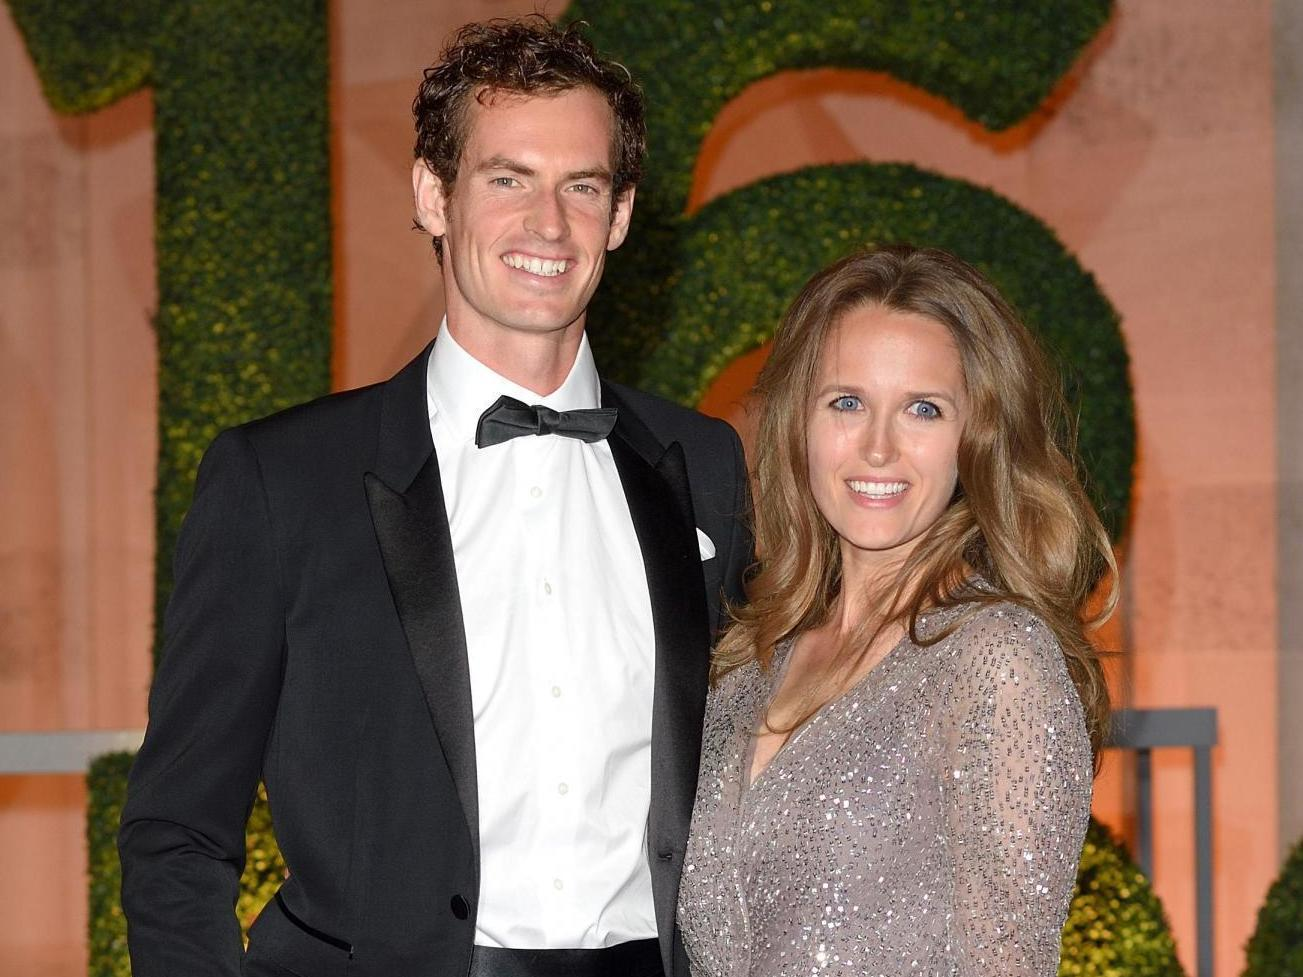 Andy Murray opens up about the impact hip injury had on his marriage: 'It put a lot of strain on our relationship'